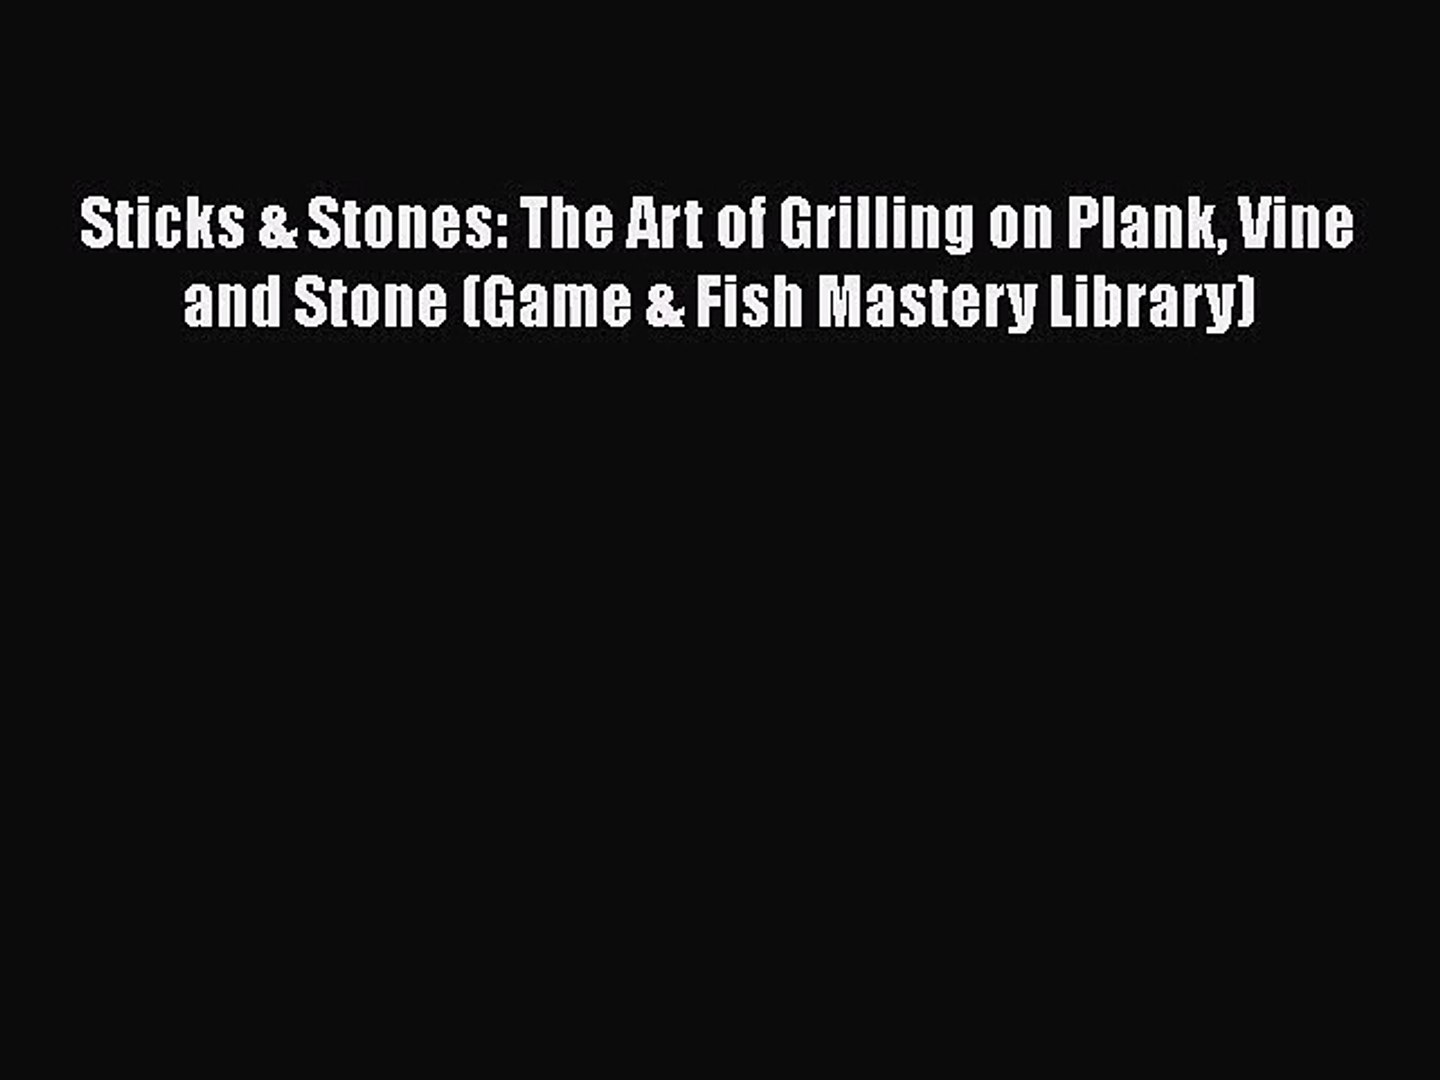 Sticks & Stones: The Art of Grilling on Plank Vine and Stone (Game & Fish Mastery Library)